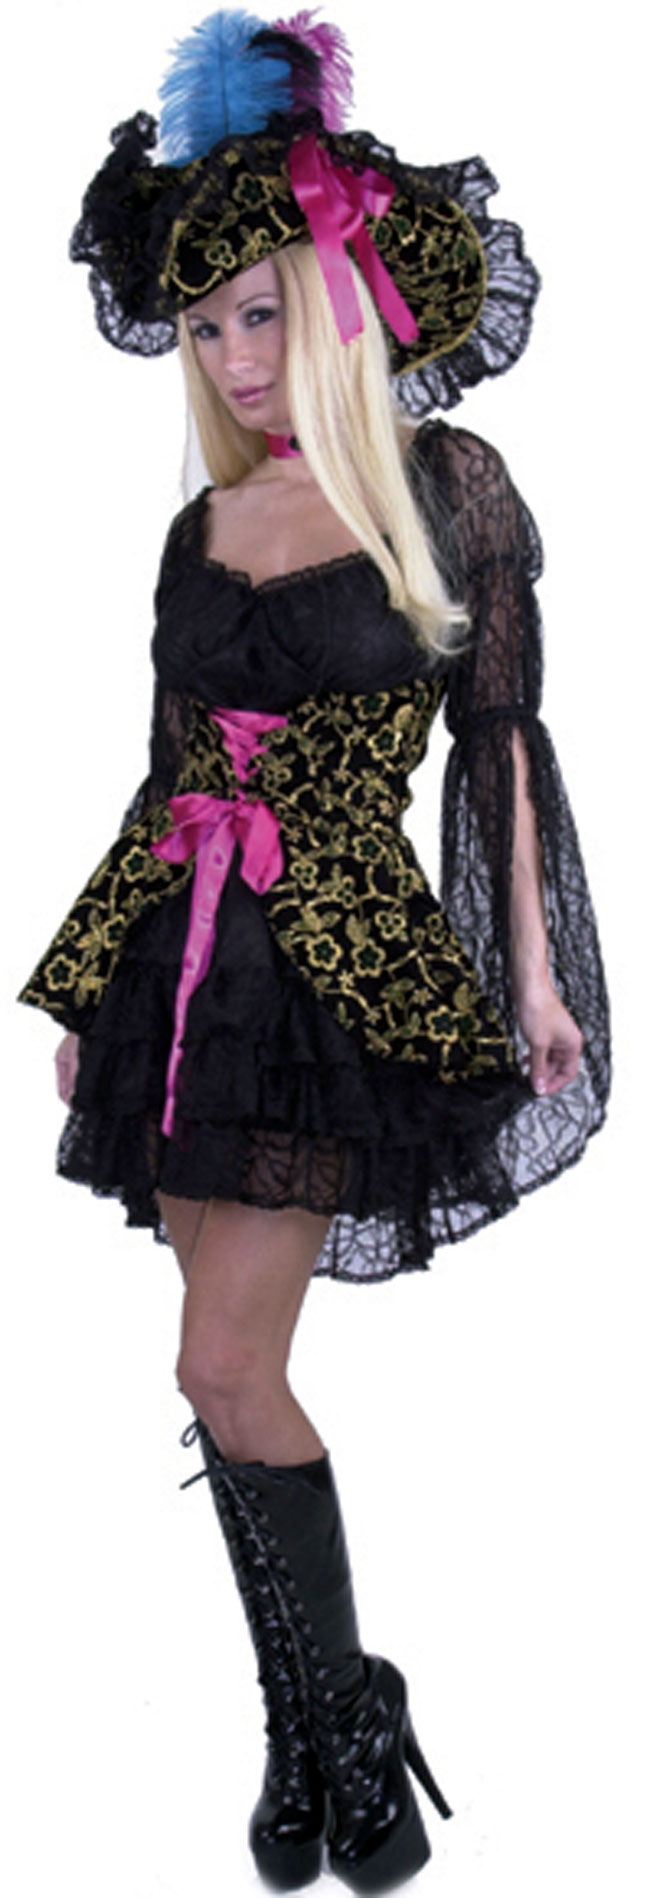 Black Lacey Pirate Lady Costume